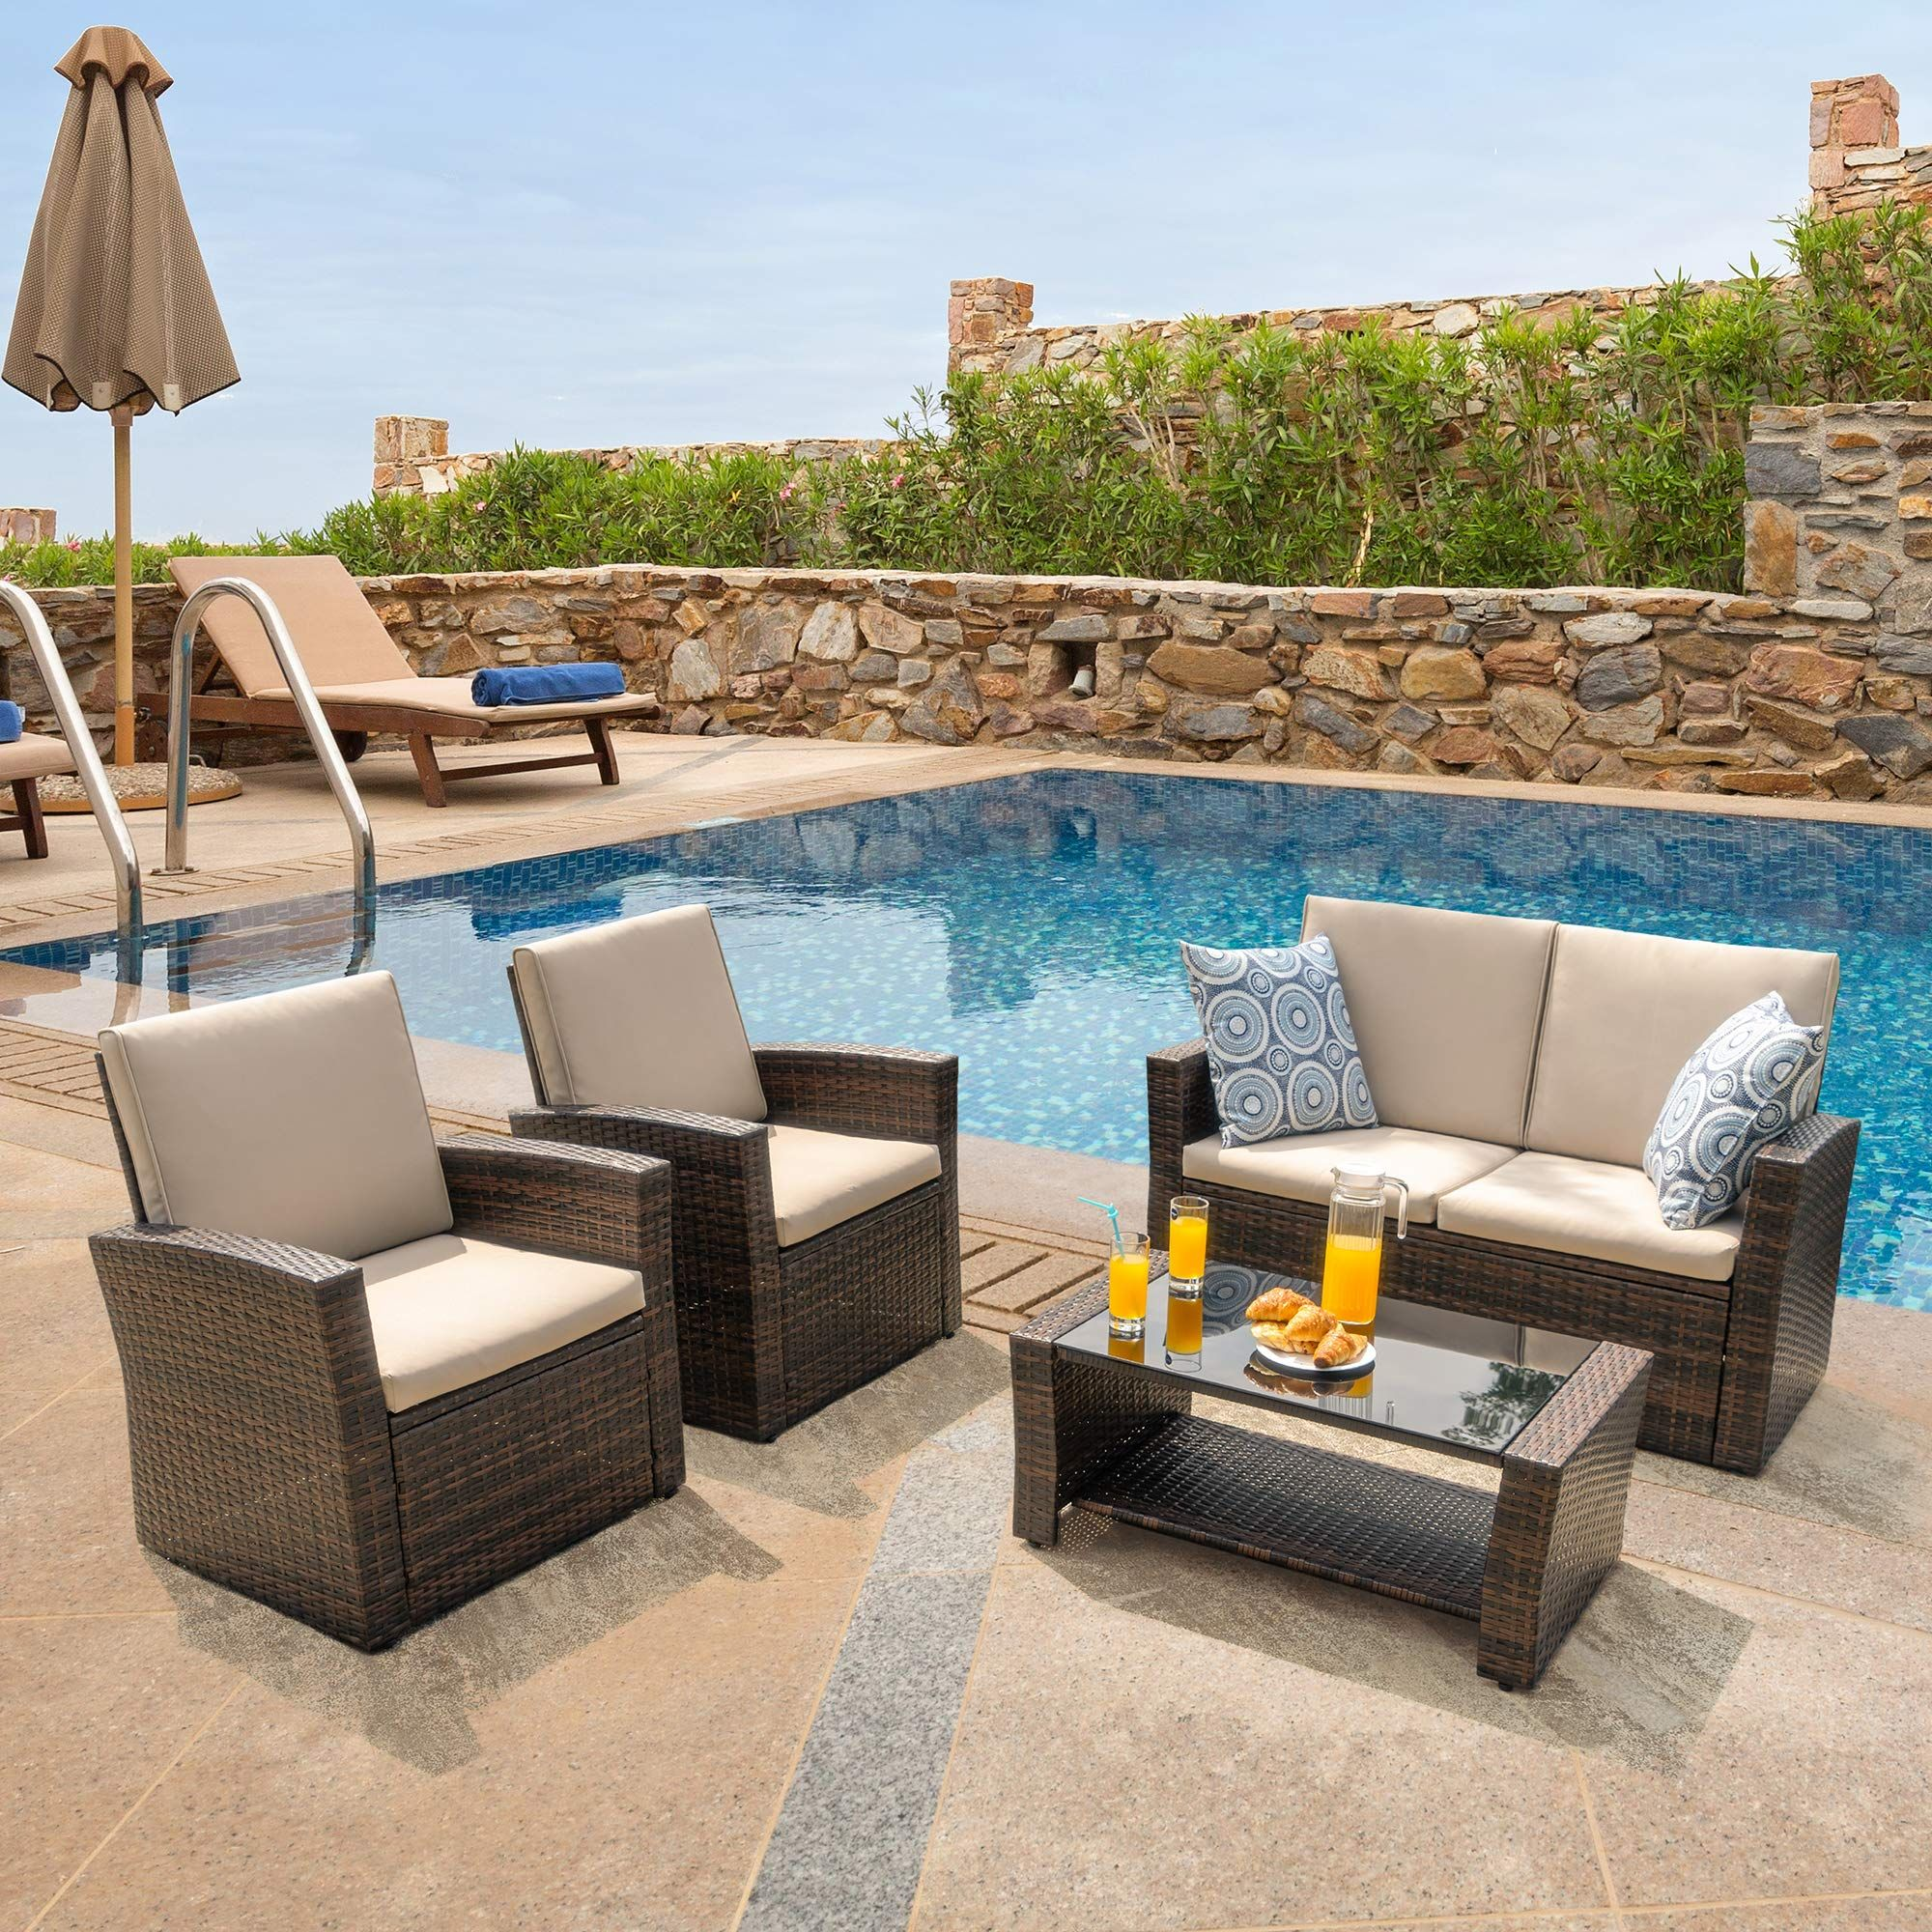 Walsunny Quality Outdoor Living Outdoor Patio Furniture Sets 5